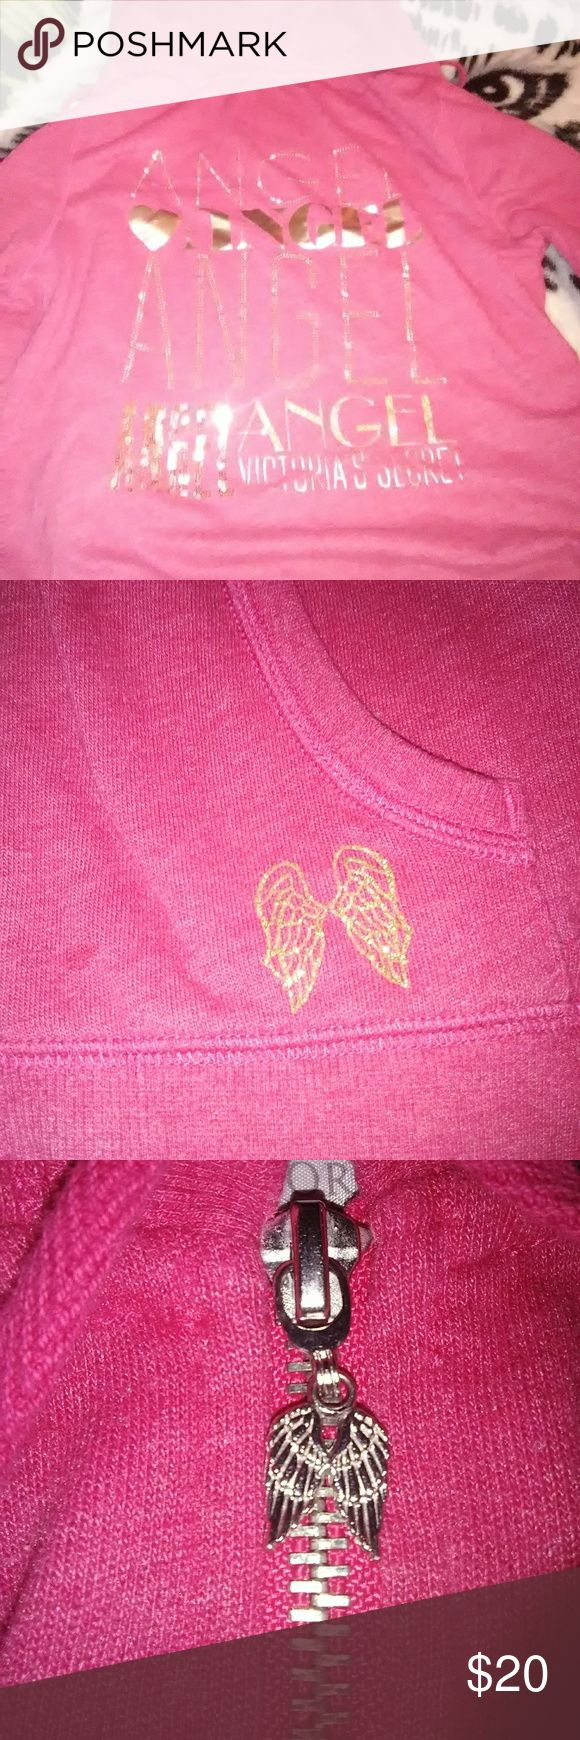 """PINK Zip Up Pink brand zip up. """"Angel"""" all the way down the back in gold writing. Perfect condition besides the minor spots on the left sleeve. Not very noticeable. Could possibly come out? Size small. PINK Jackets & Coats"""